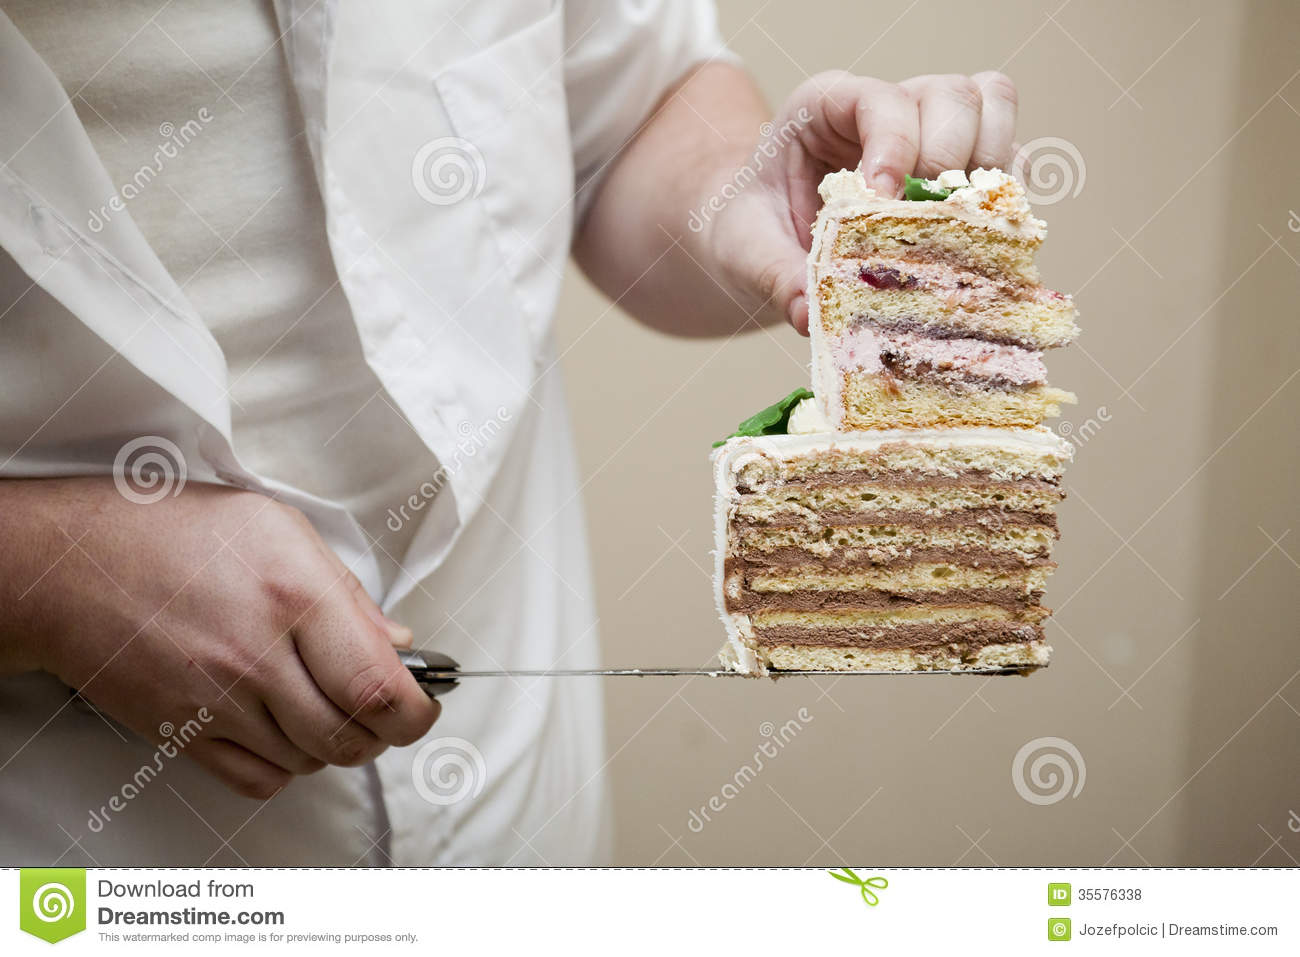 Chef holding cake cuttings stock photo  Image of delicious   35576338 Nice wedding cake with cream and flower decorations  Chocolate and  strawberry filling